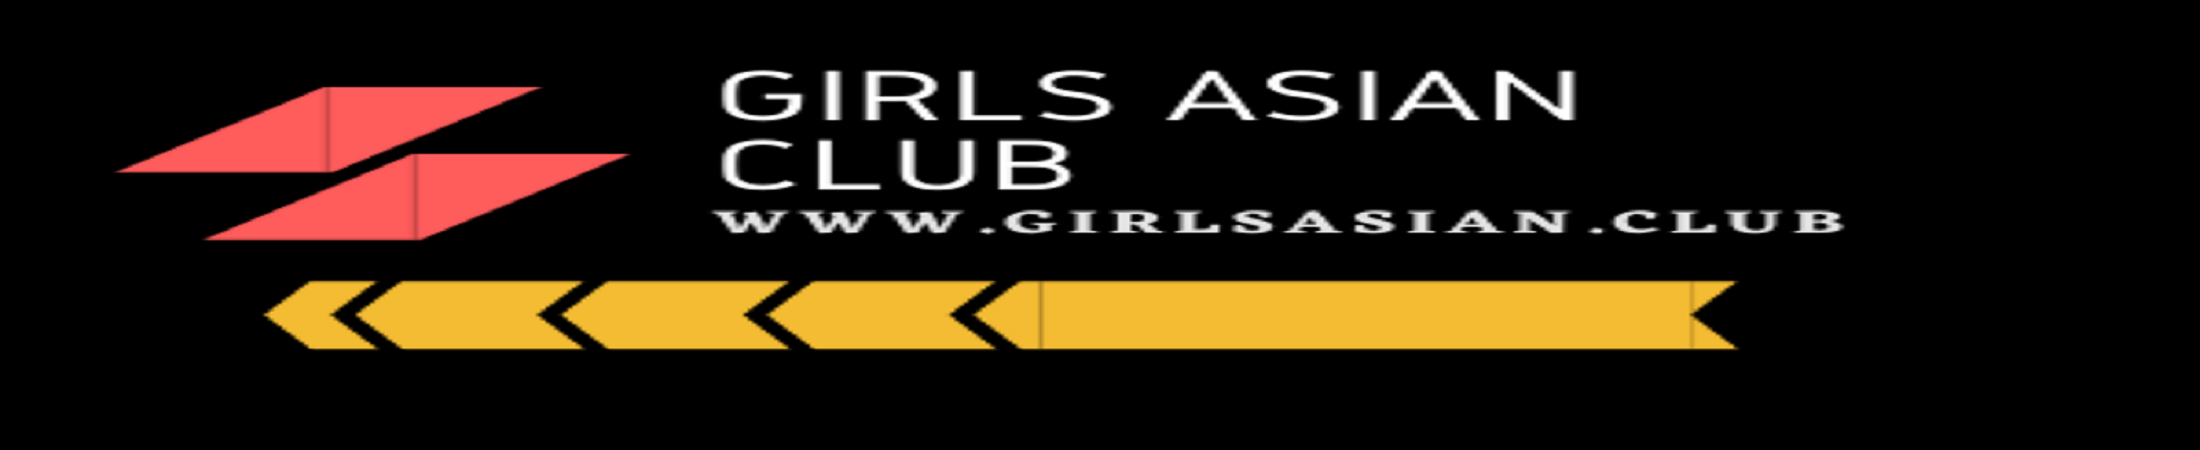 Girls Asian Club